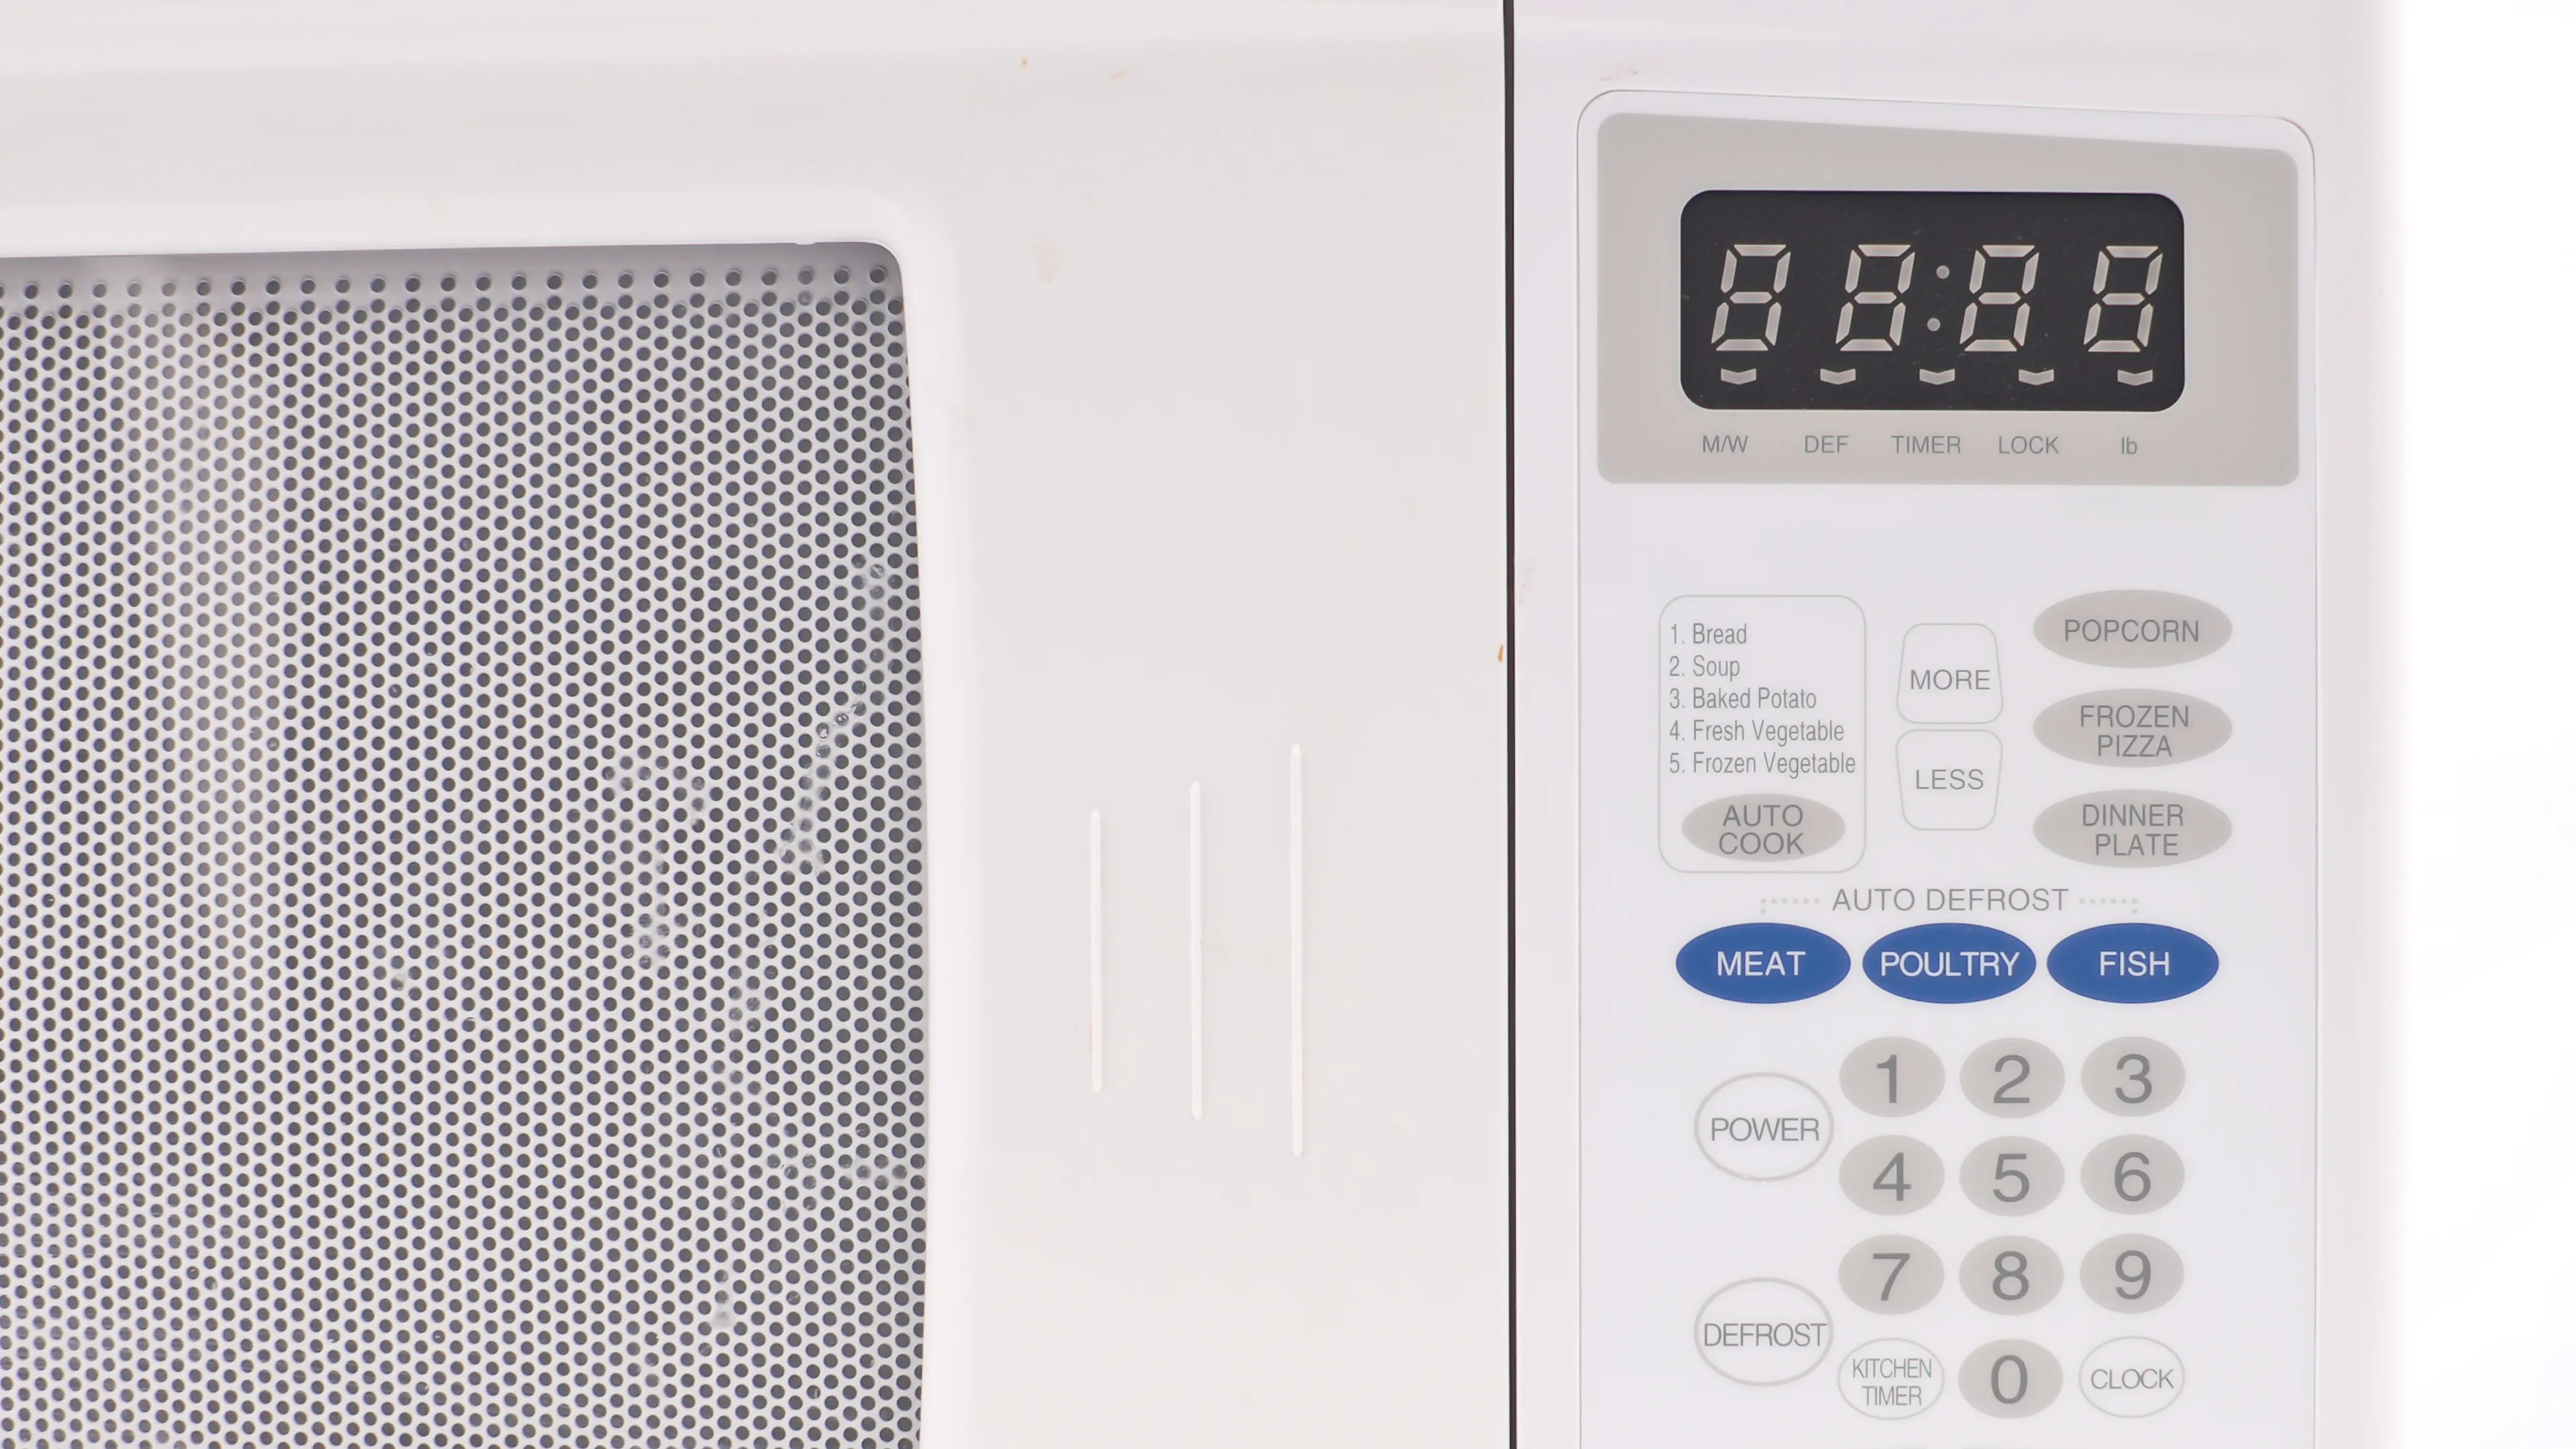 the wattage power of your microwave